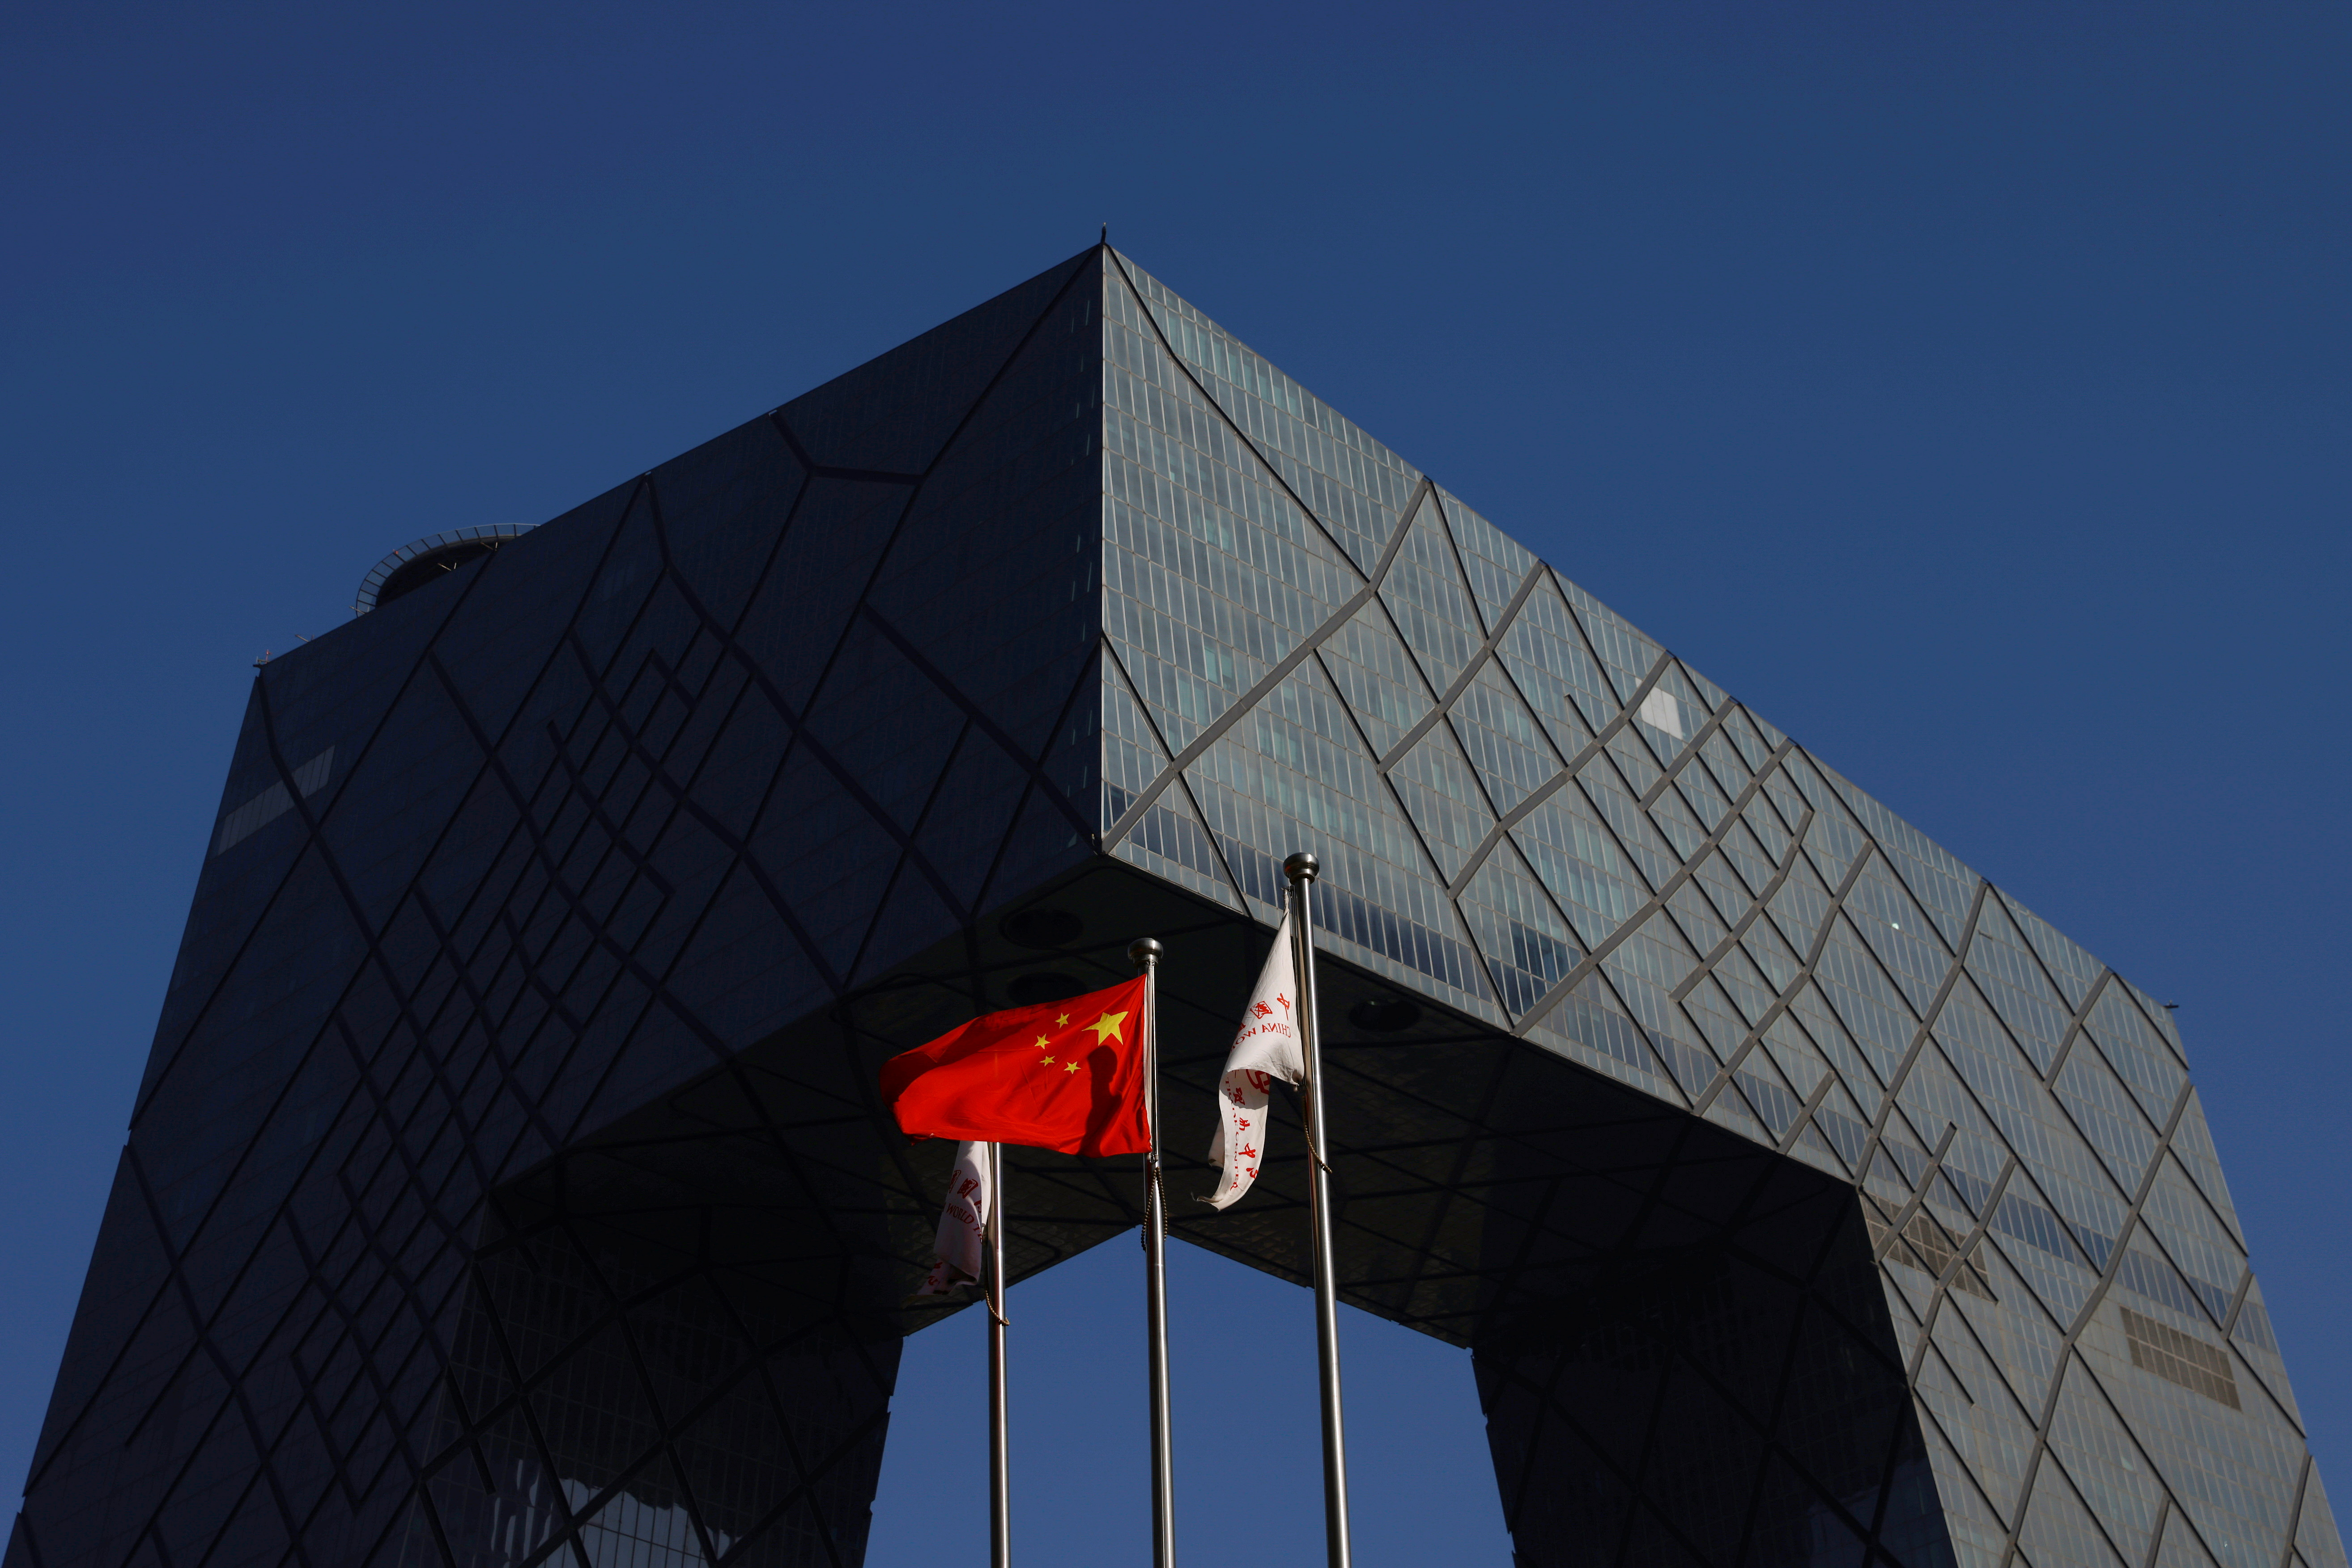 A Chinese flag flutters outside the CCTV headquarters, the home of Chinese state media outlet CCTV and its English-language sister channel CGTN, in Beijing, China February 5, 2021. REUTERS/Carlos Garcia Rawlins